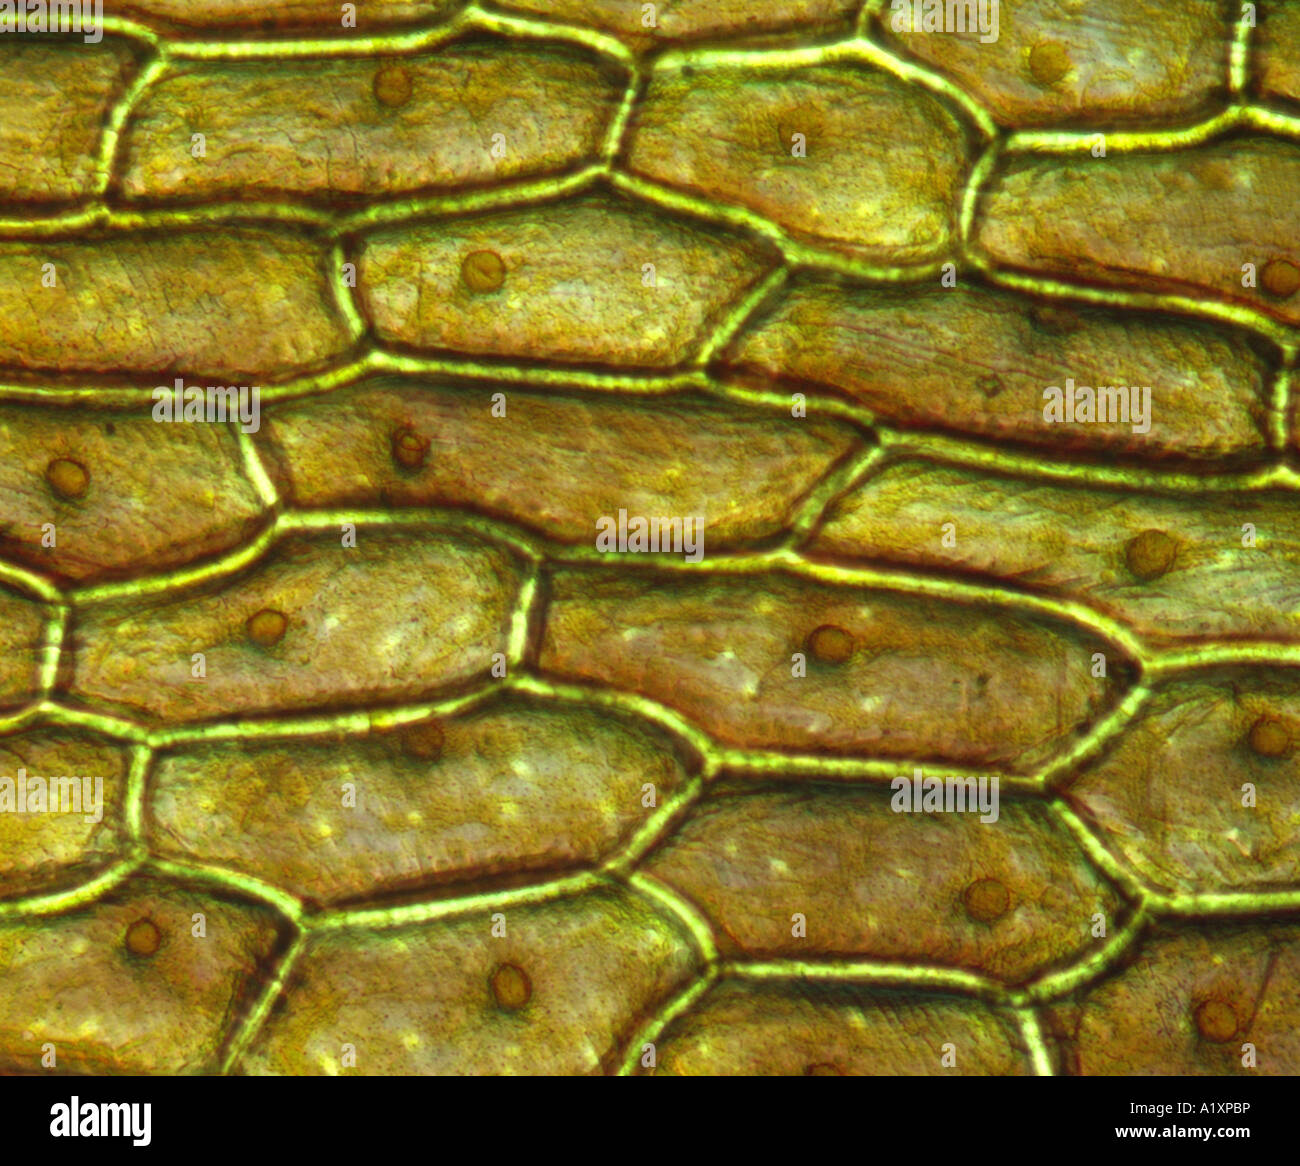 onion cell diagram 3 way electrical switch cells stock photos and images alamy